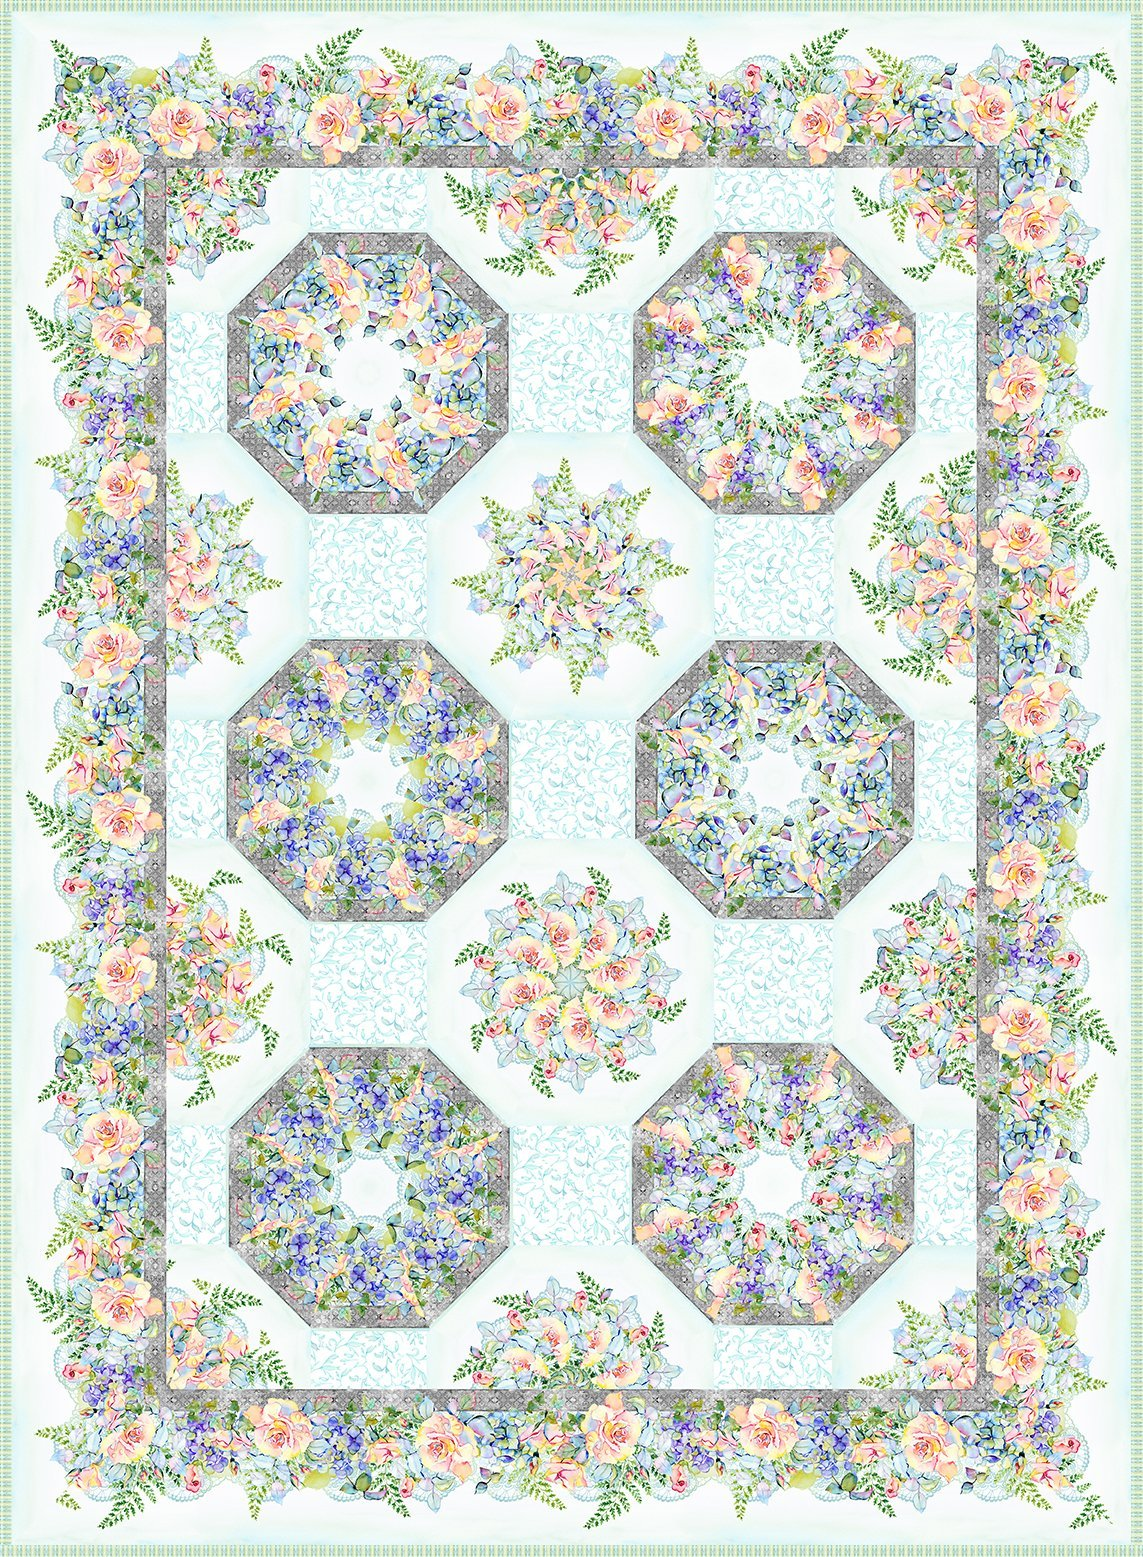 In the Beginning - Patricia Kaleidoscope Quilt Kit